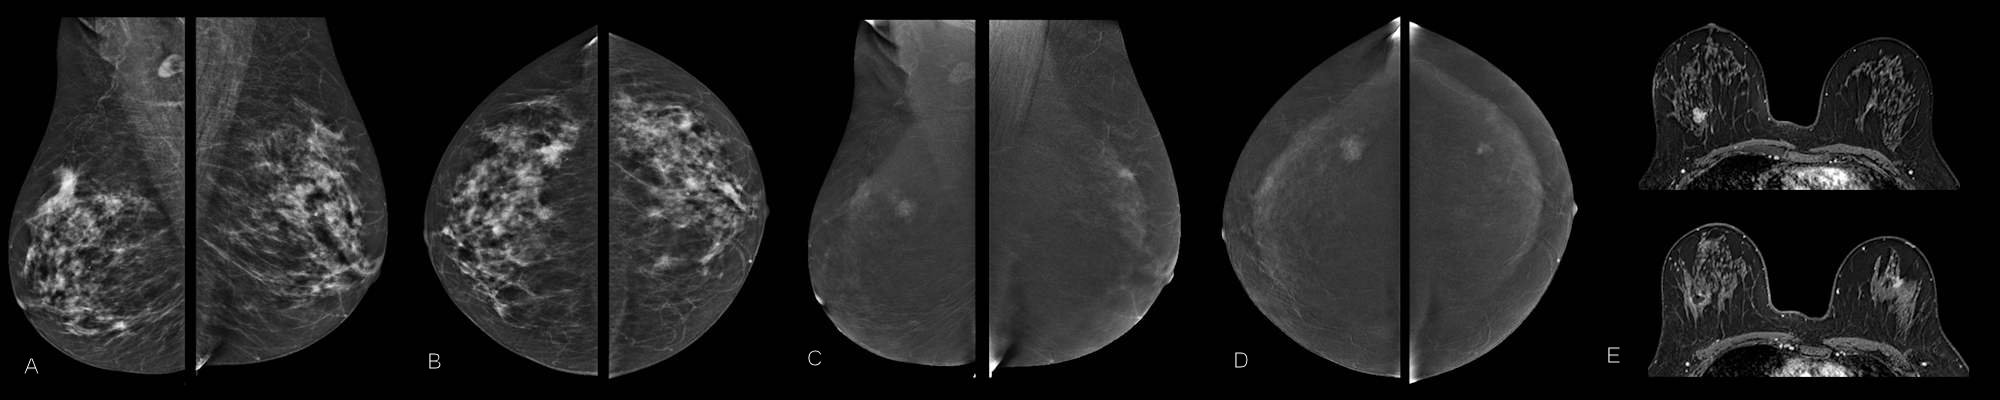 Contrast-enhanced mammography exam of both breasts in two views